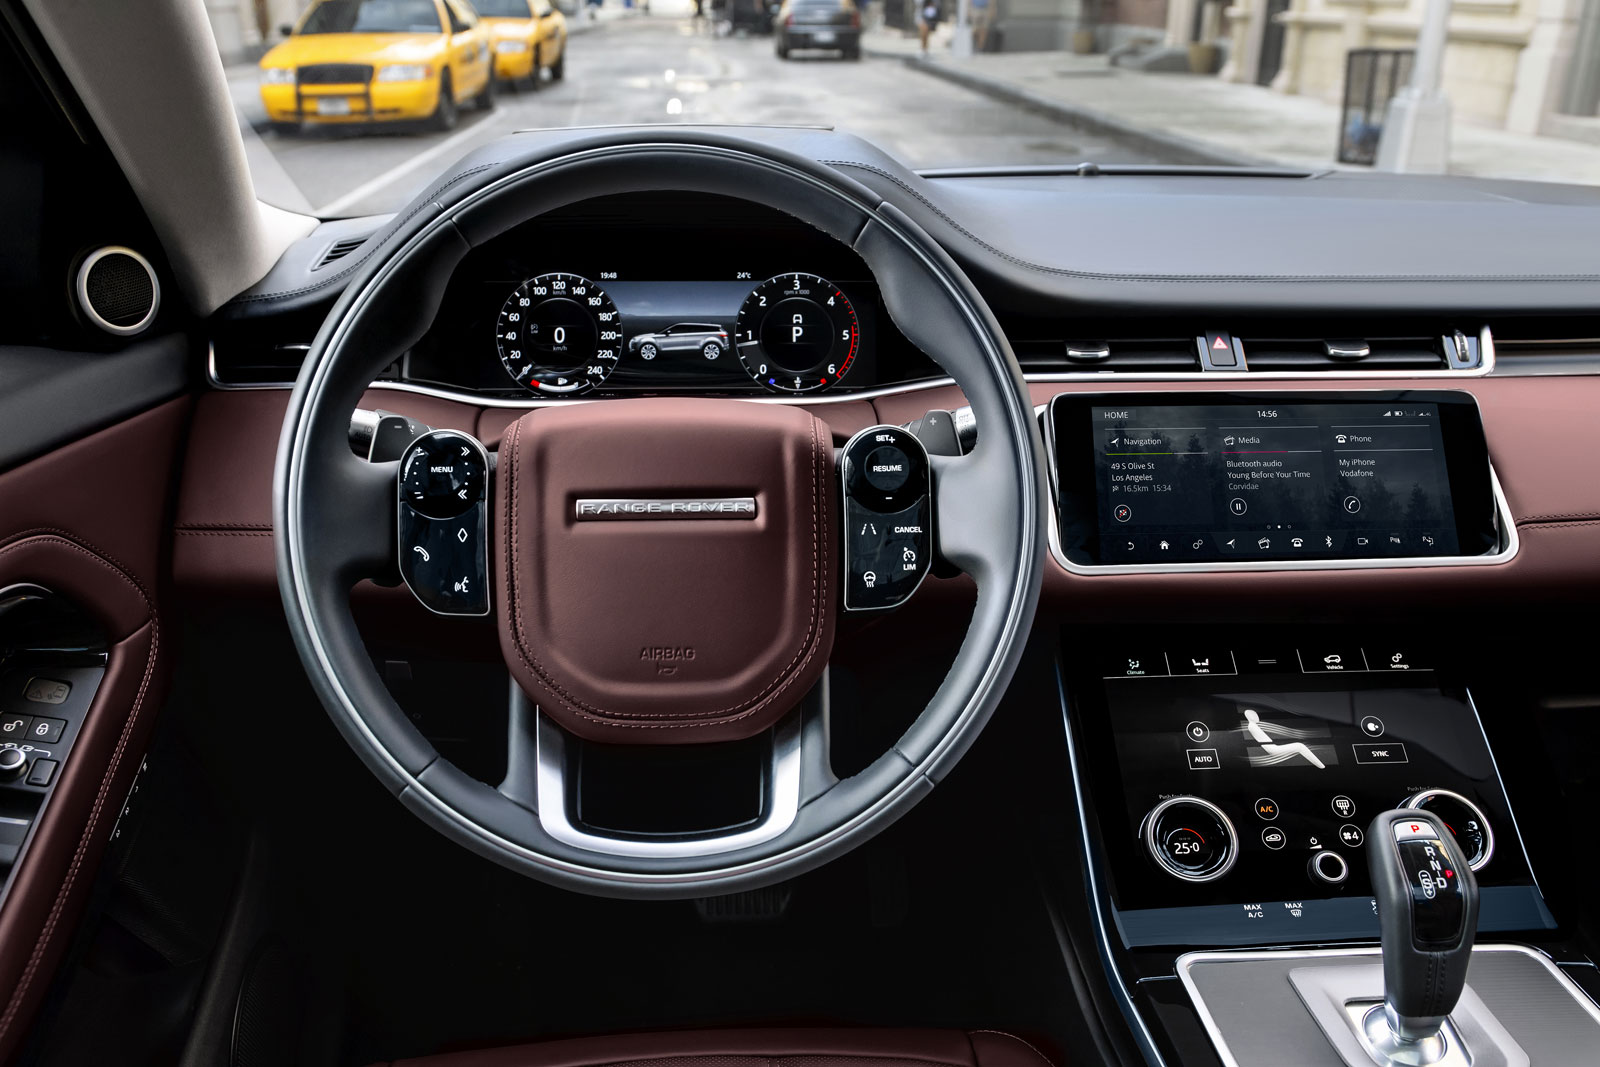 New Range Rover Evoque Interior Design